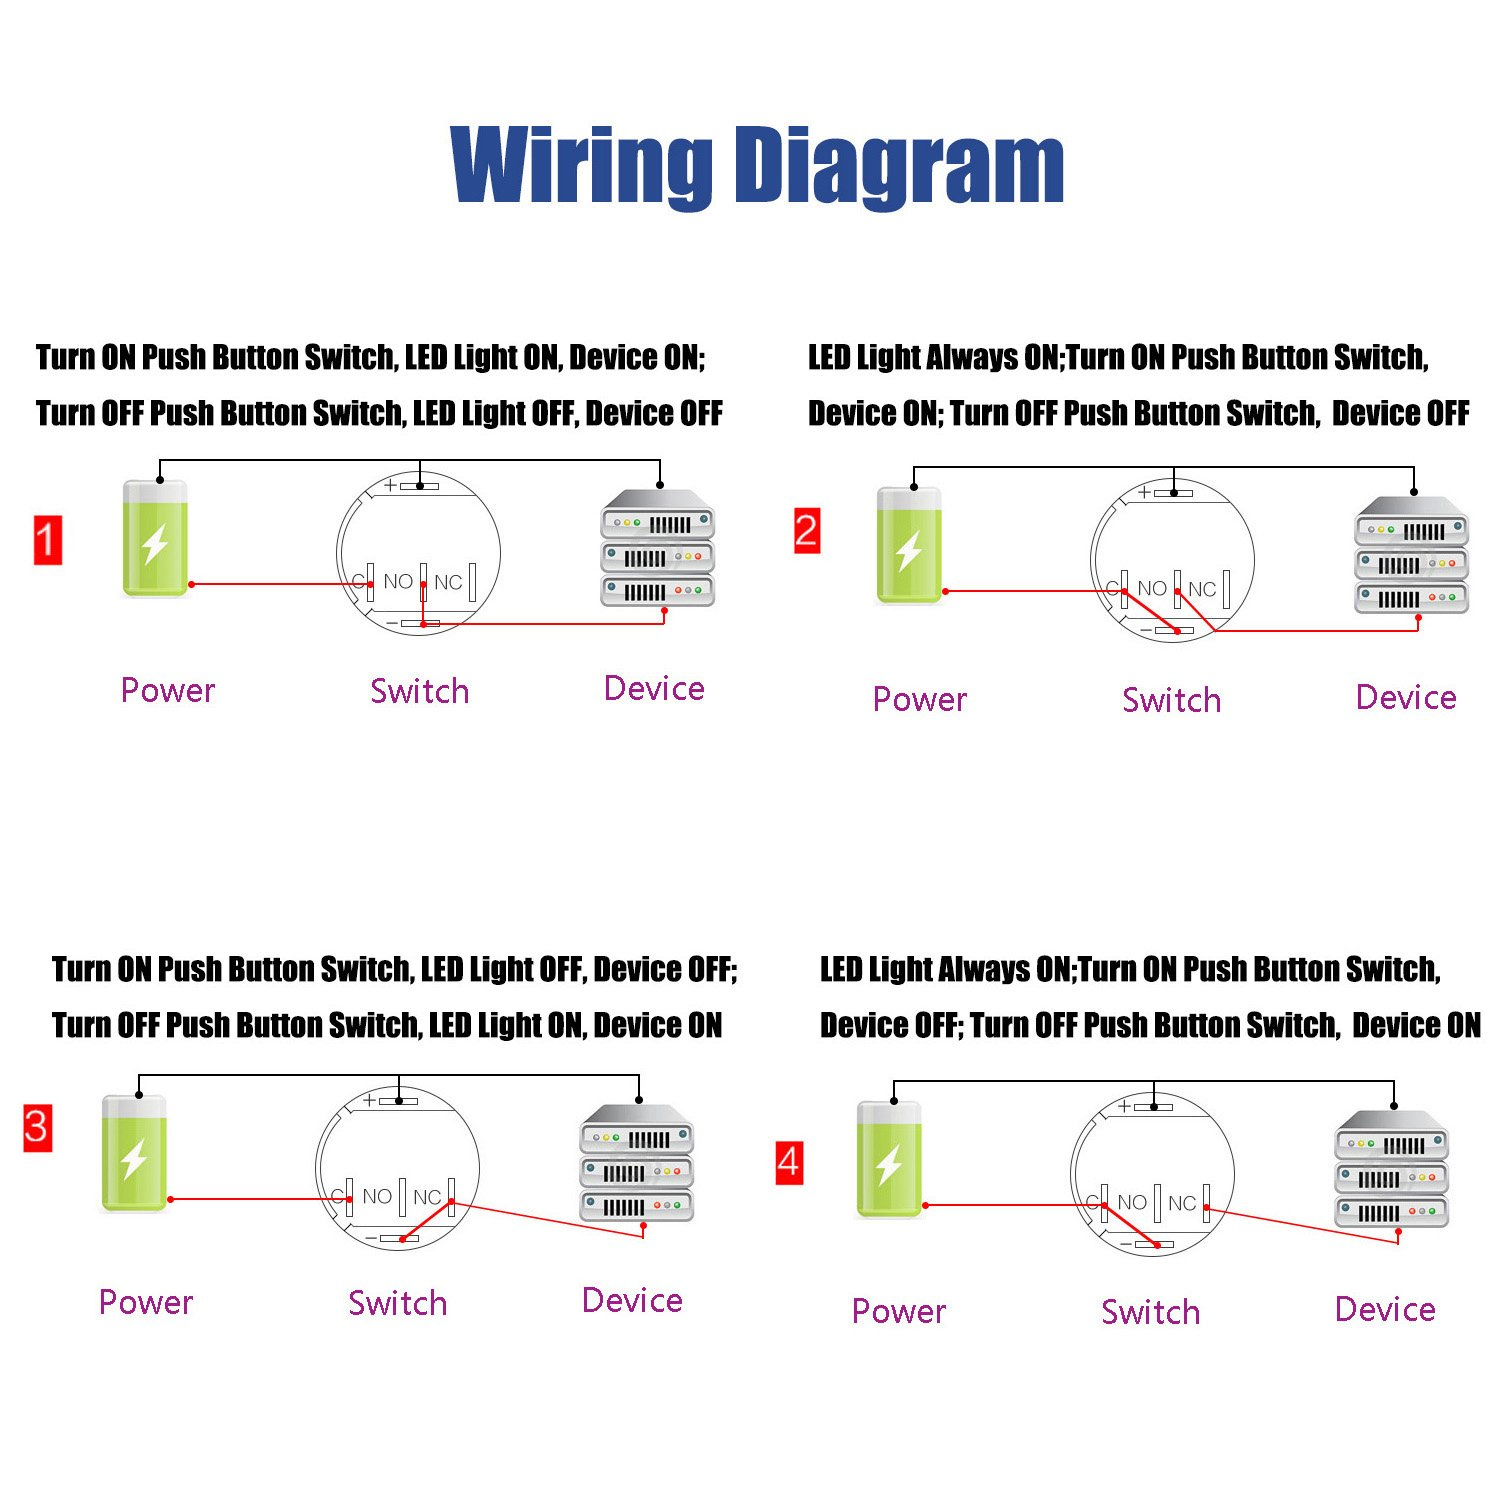 Push Button Switch Wiring Diagram Breadboard Electrical Start Stop First Frc Led Light Ring 39 Horn